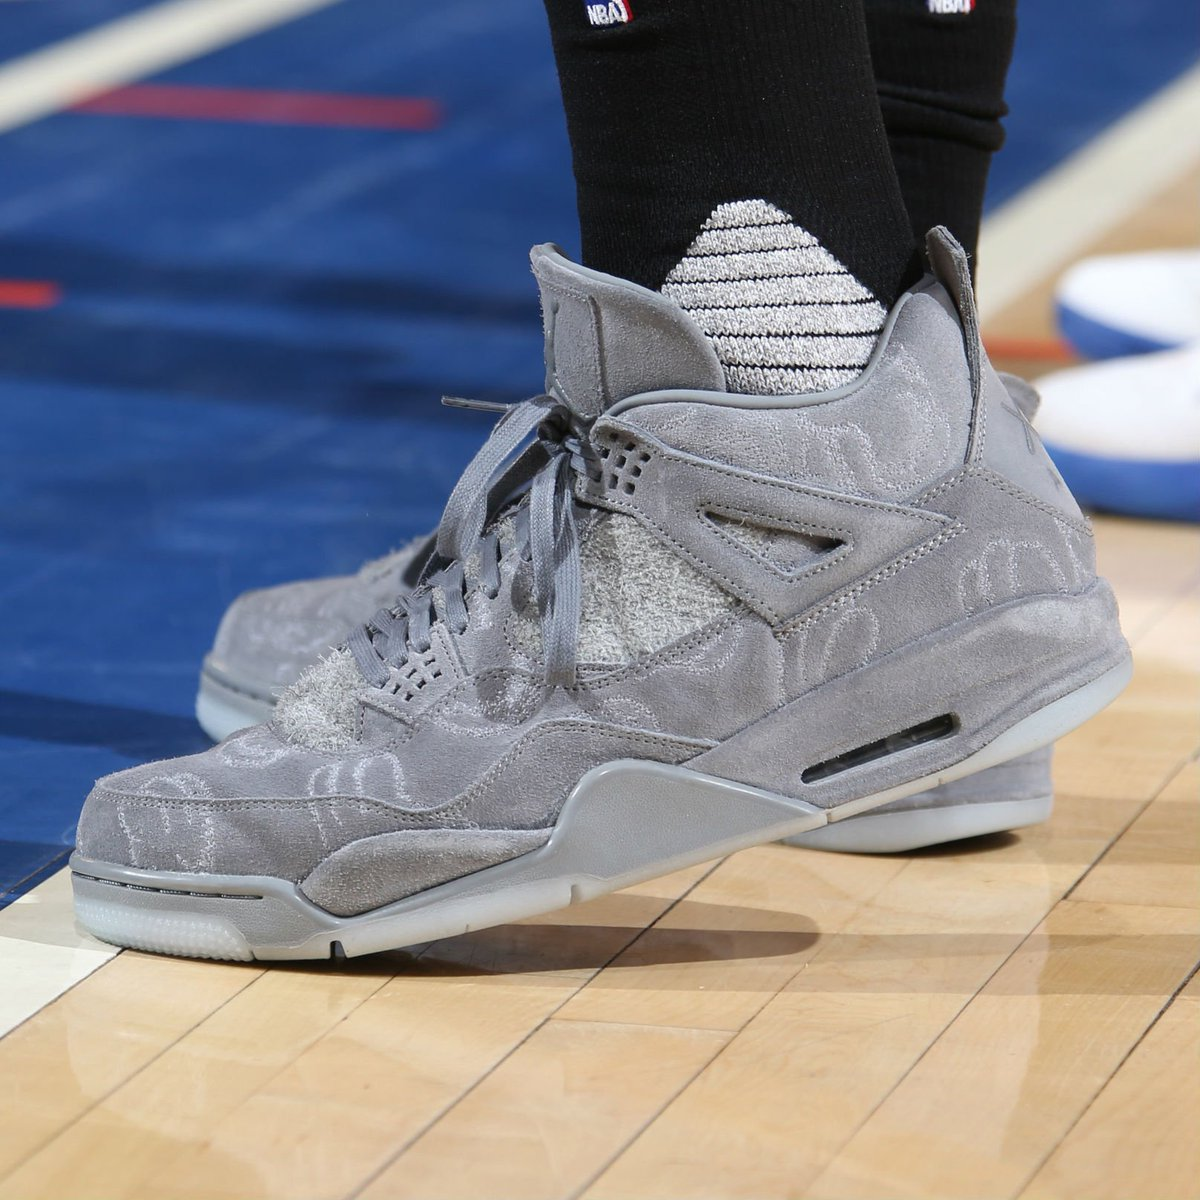 a001f9a32c16e8 solewatch pj tucker wearing the kaws x air jordan 4 vs the knicks